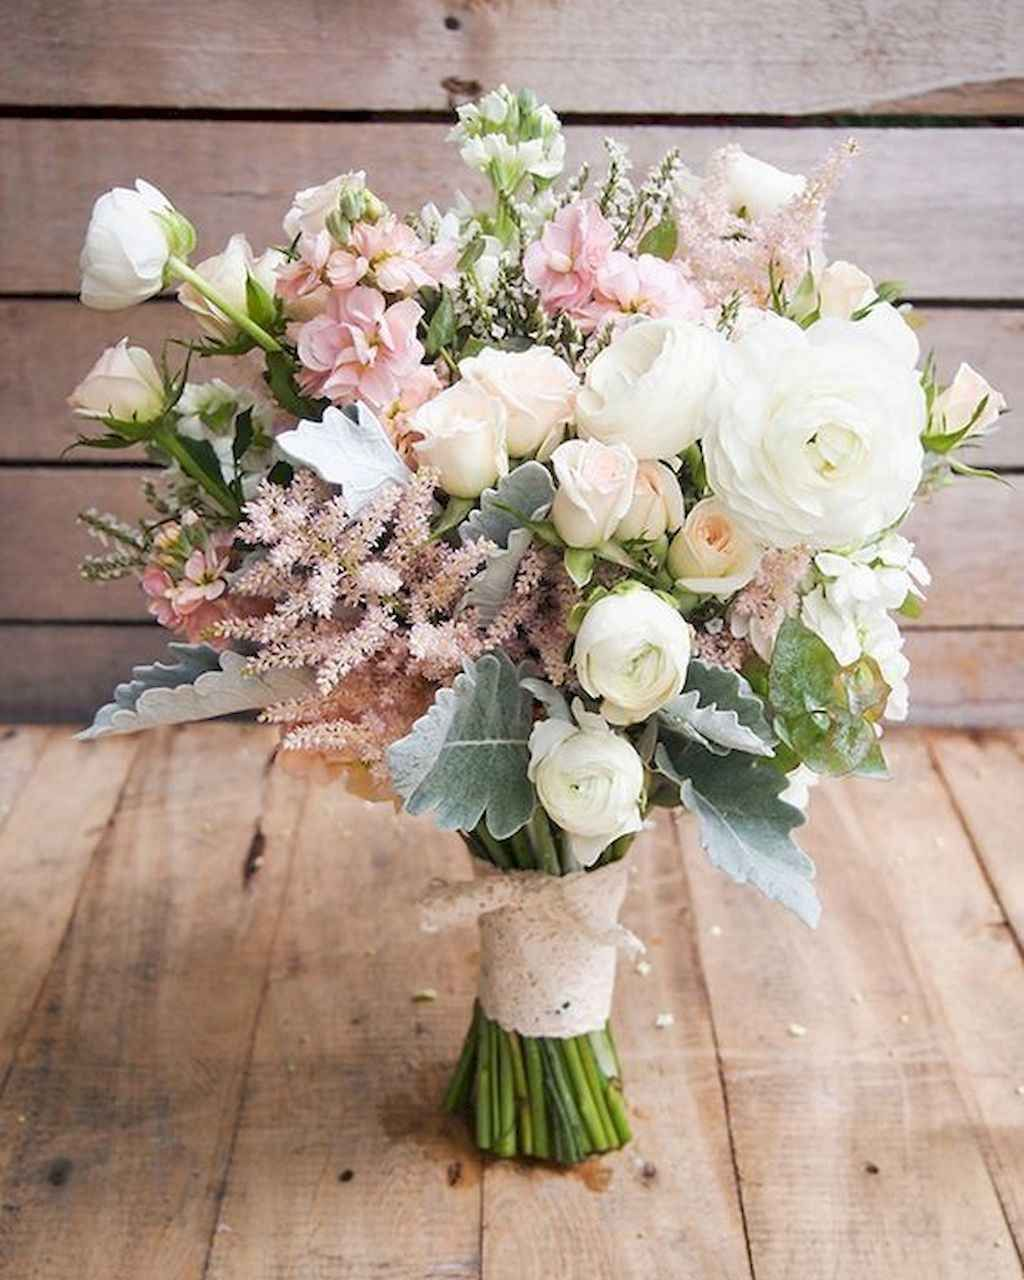 12 Beautiful Pastel Wedding Decor Ideas For The Spring In